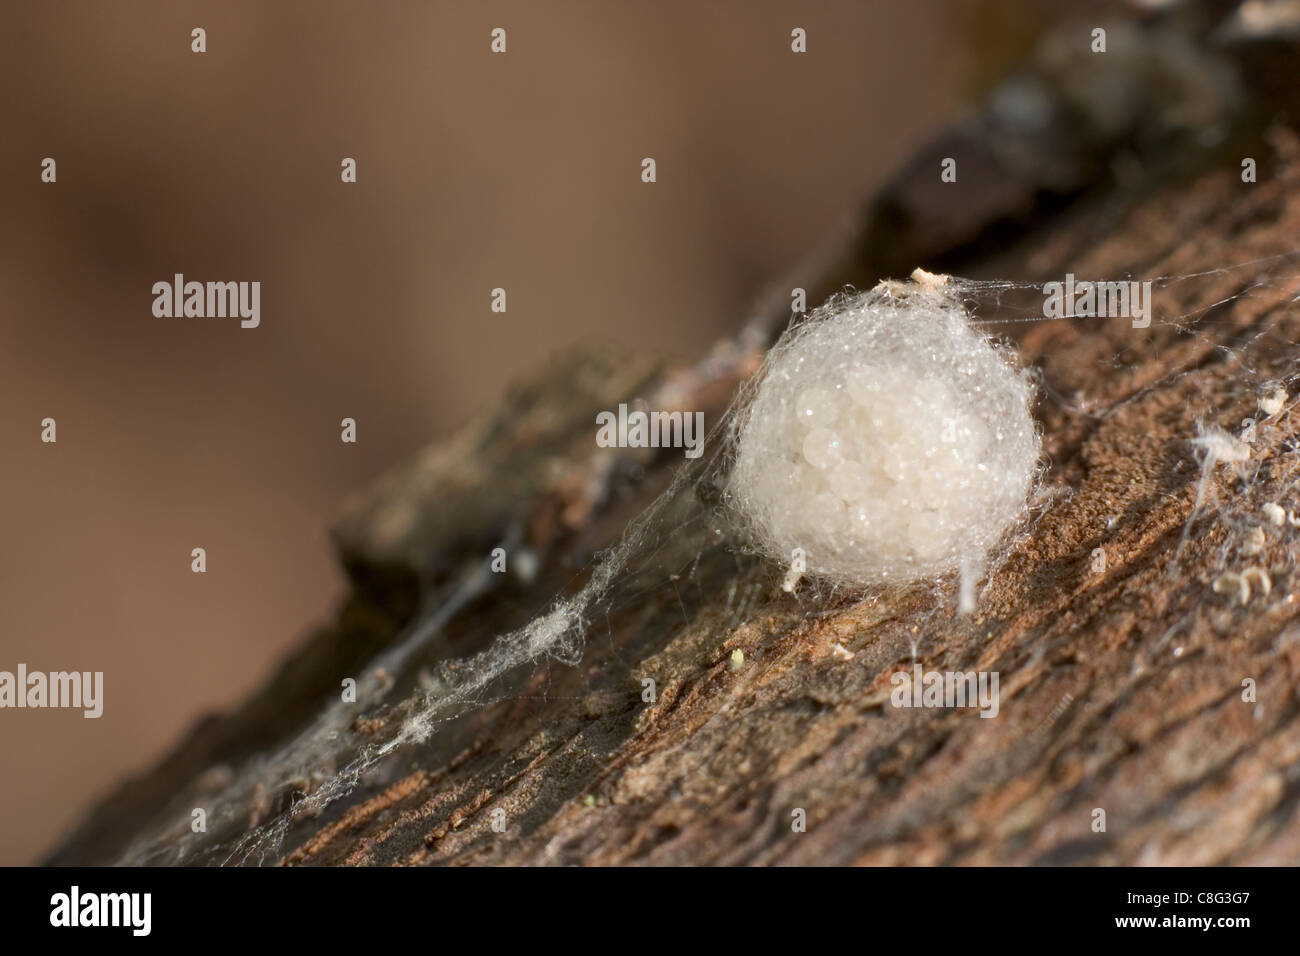 Spider Eggs in Sac - Stock Image